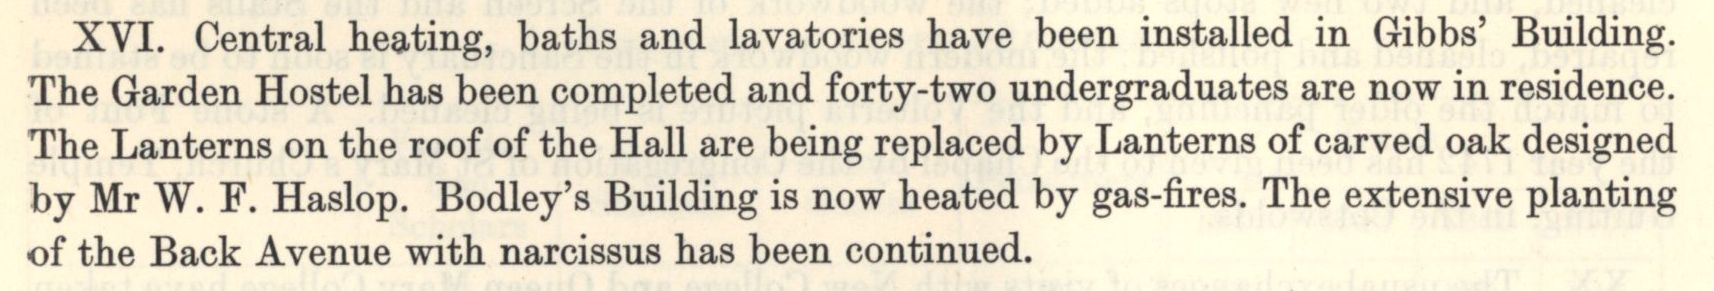 The installation of central heating, baths and lavatories in the Gibbs building. [Annual Report, 1950]